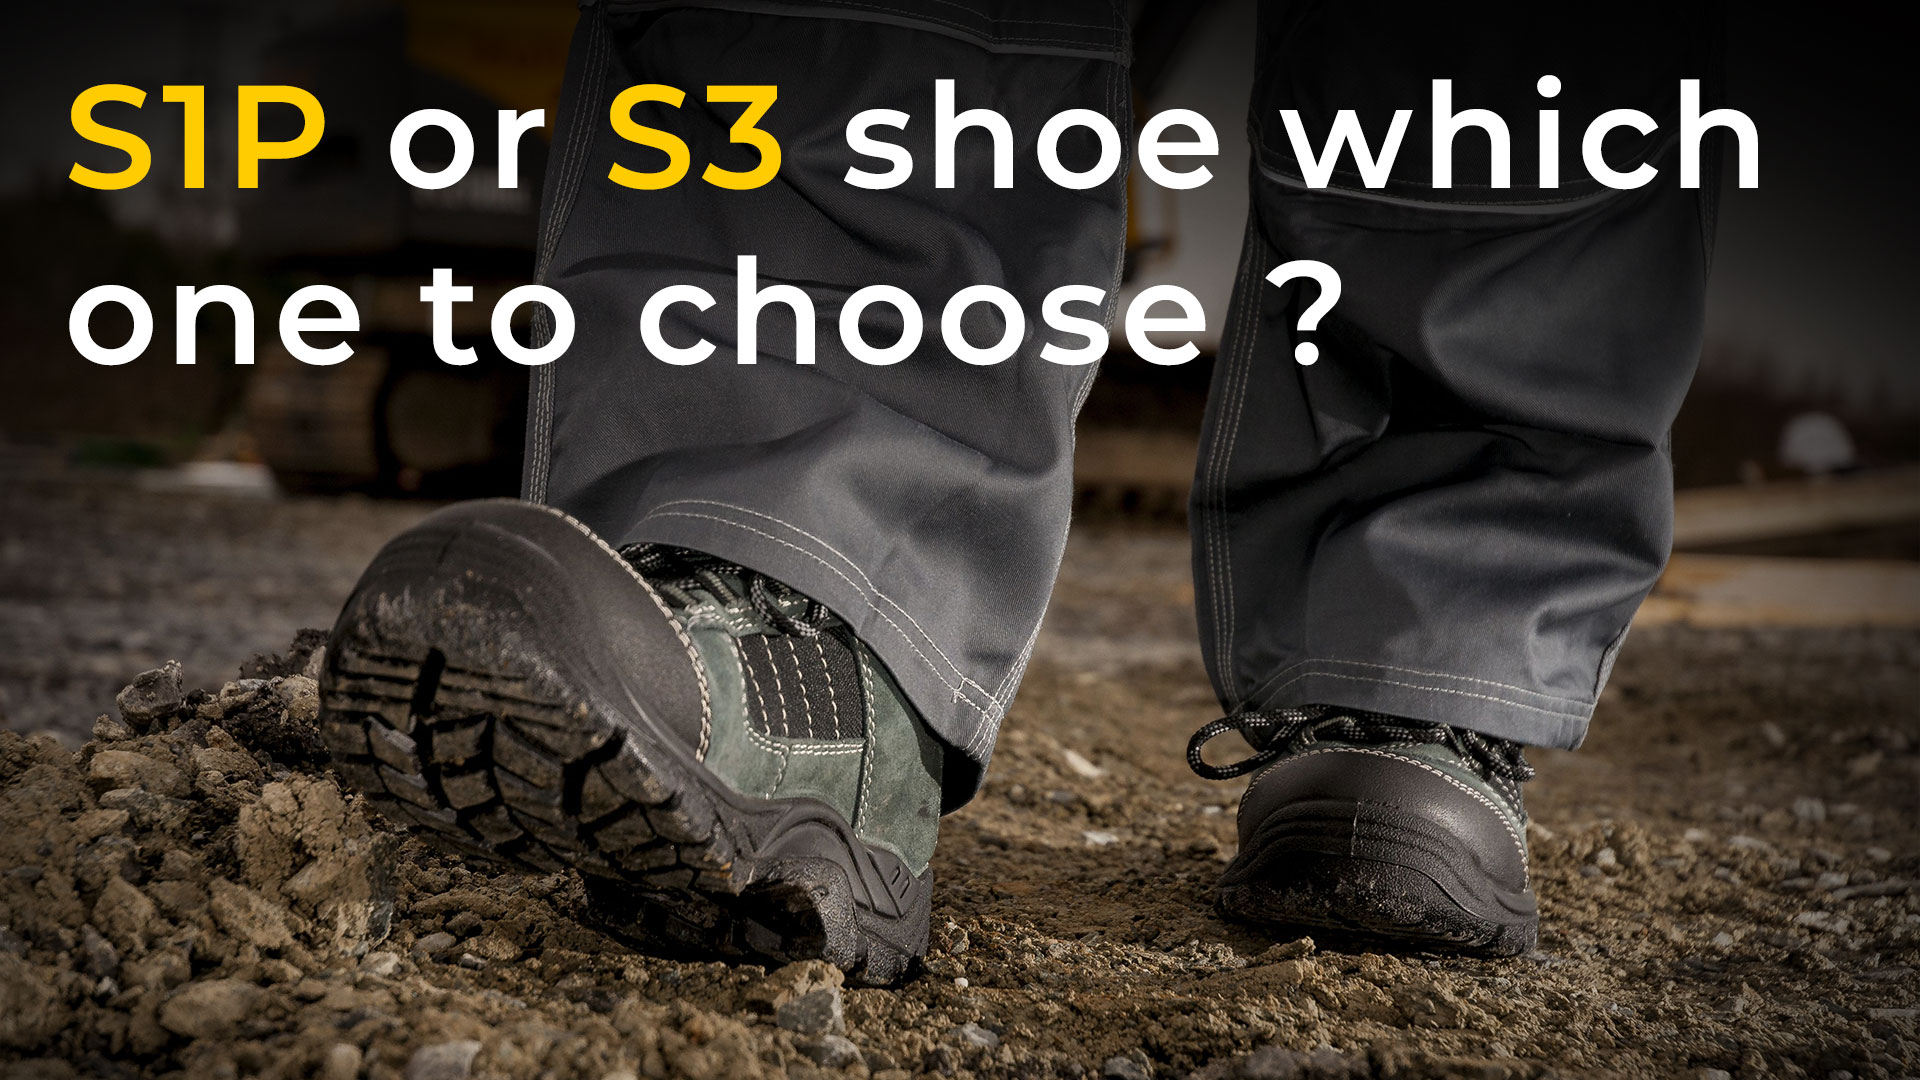 safety shoes S1P or S3